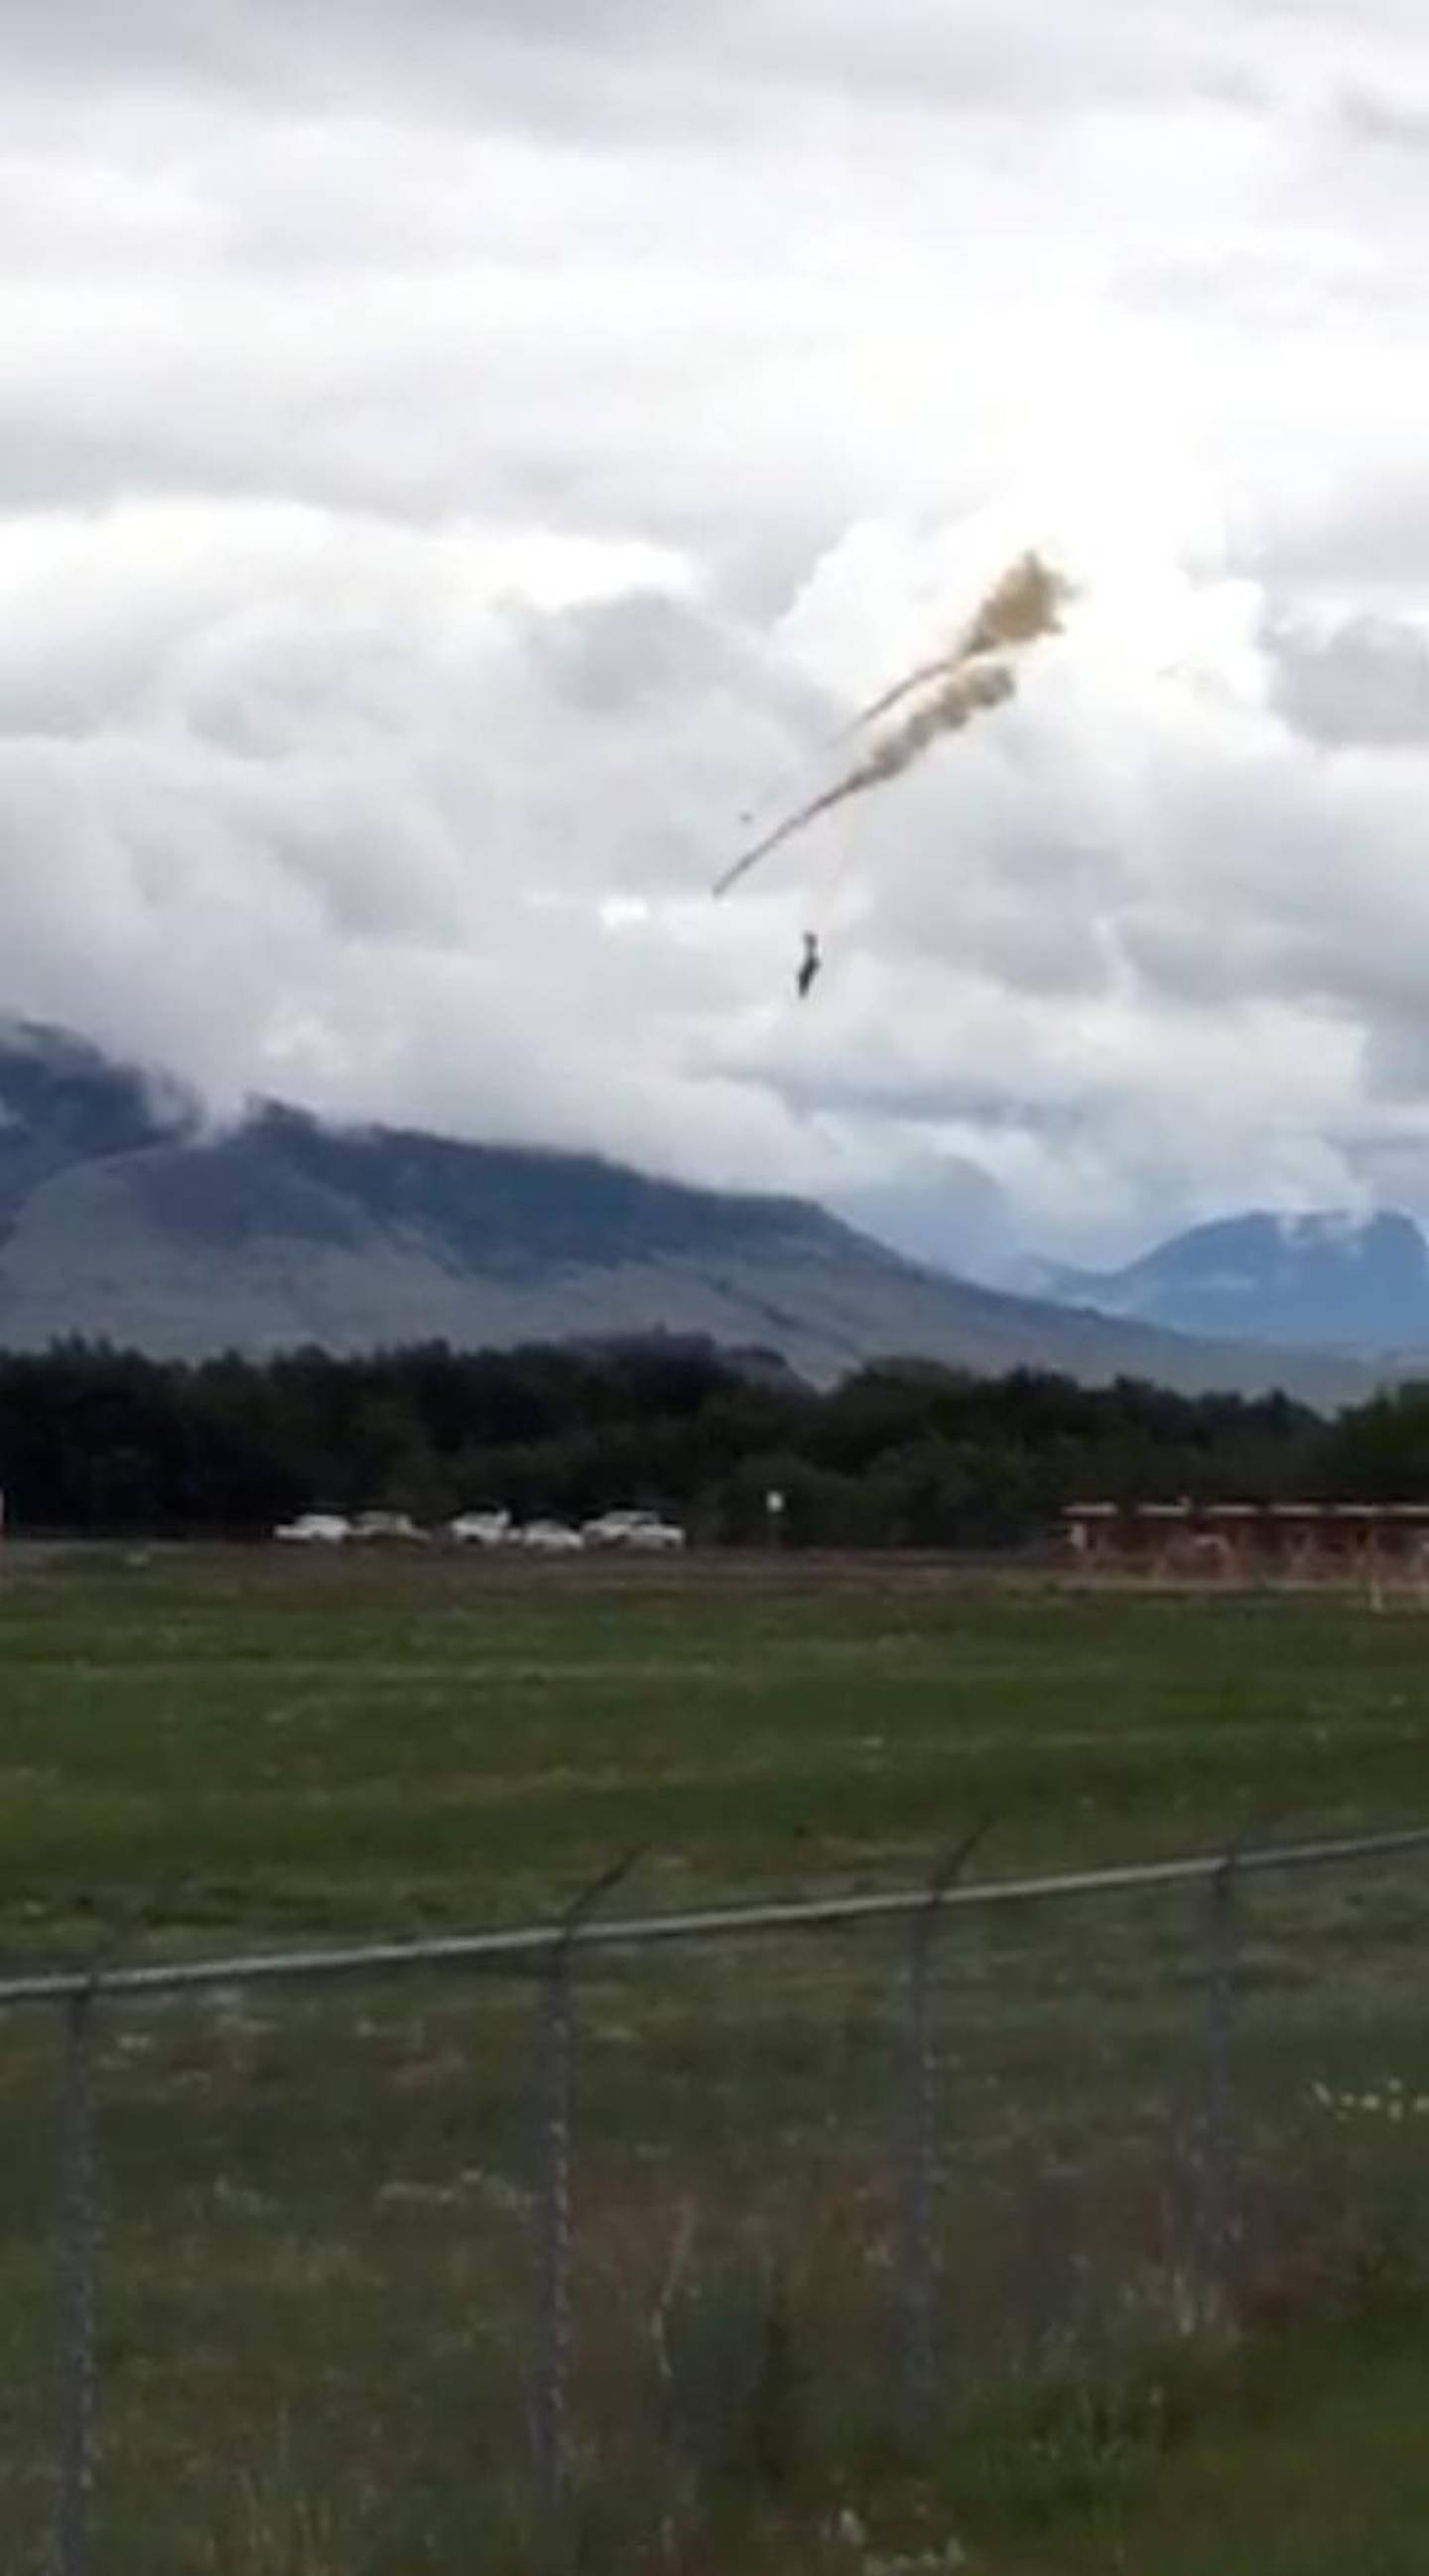 A plane of the Canadian Air Force's Snowbirds aerobatic demonstration team is seen prior crashing in Kamloops, British Columbia, Canada May 17, 2020, in this still image obtained from a social media video. Shannon Forrest/via REUTERS THIS IMAGE HAS BEEN SUPPLIED BY A THIRD PARTY. MANDATORY CREDIT. NO RESALES. NO ARCHIVES.